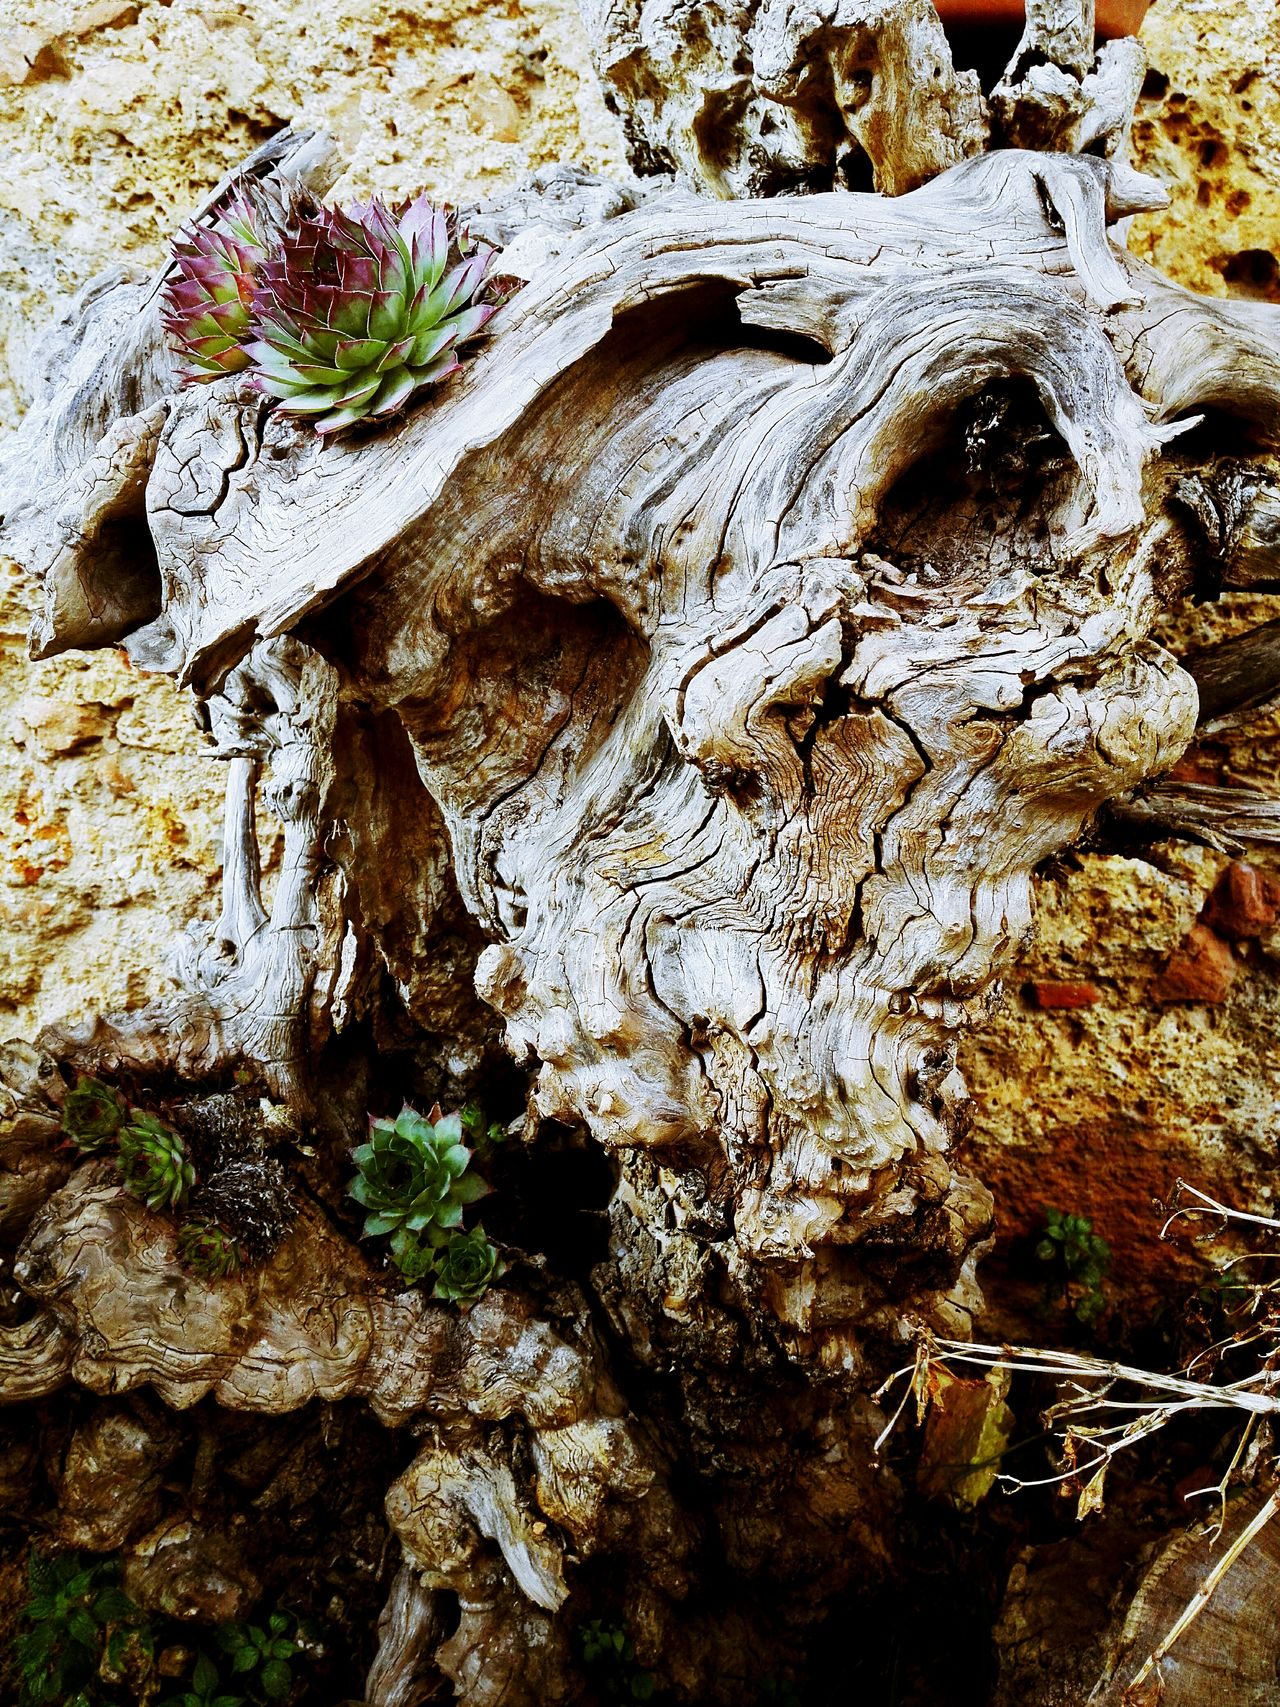 Skull And Bones Troll Wood Monster Flower Head Plant No People Nature Tree High Angle View Outdoors Close-up Day Water Backgrounds Concentric Beauty In Nature EyeEmNewHere